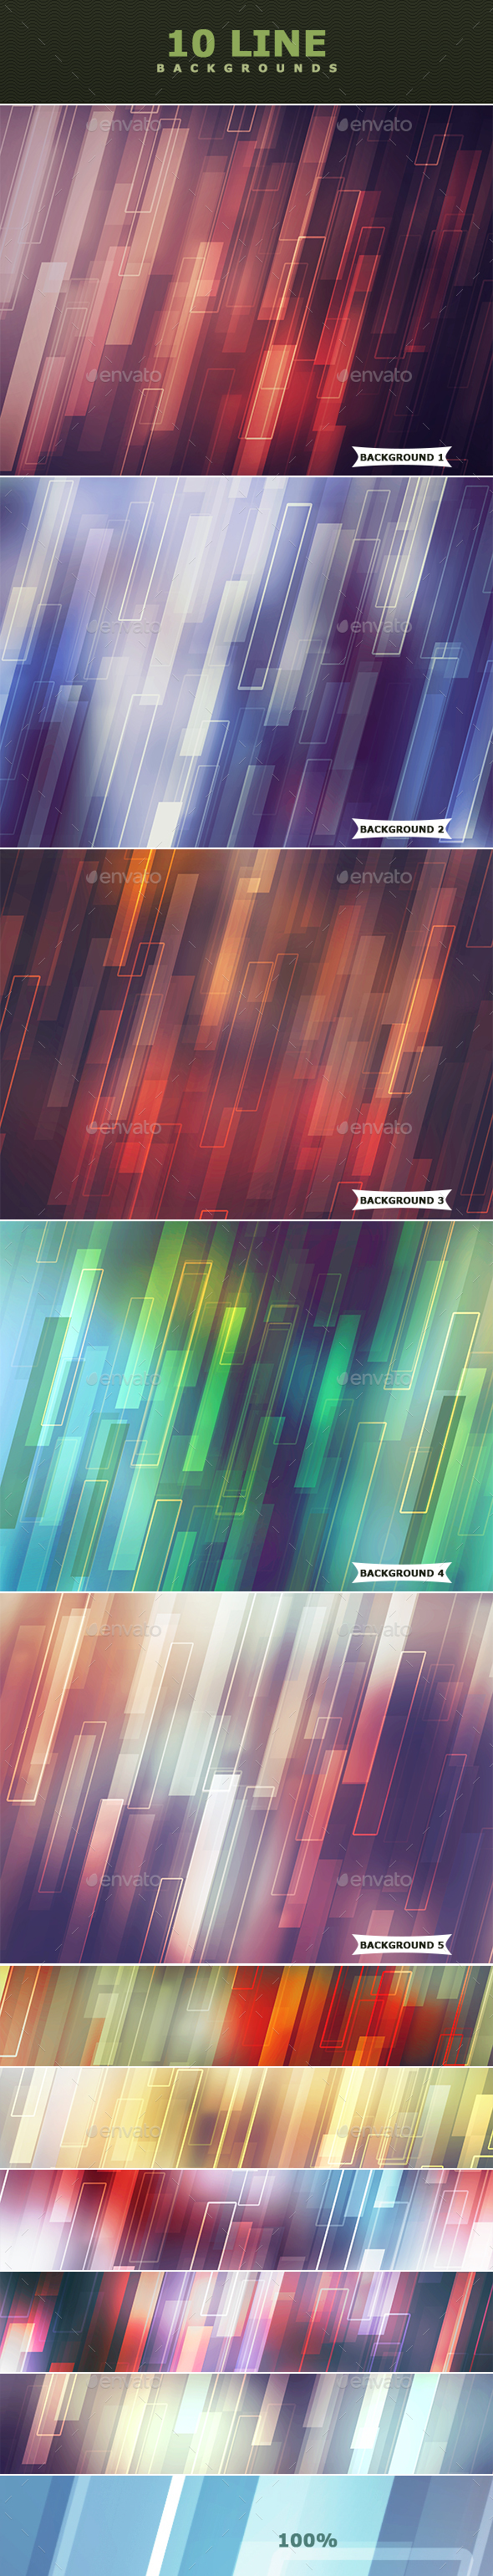 Line Photoshop Backgrounds - Abstract Backgrounds